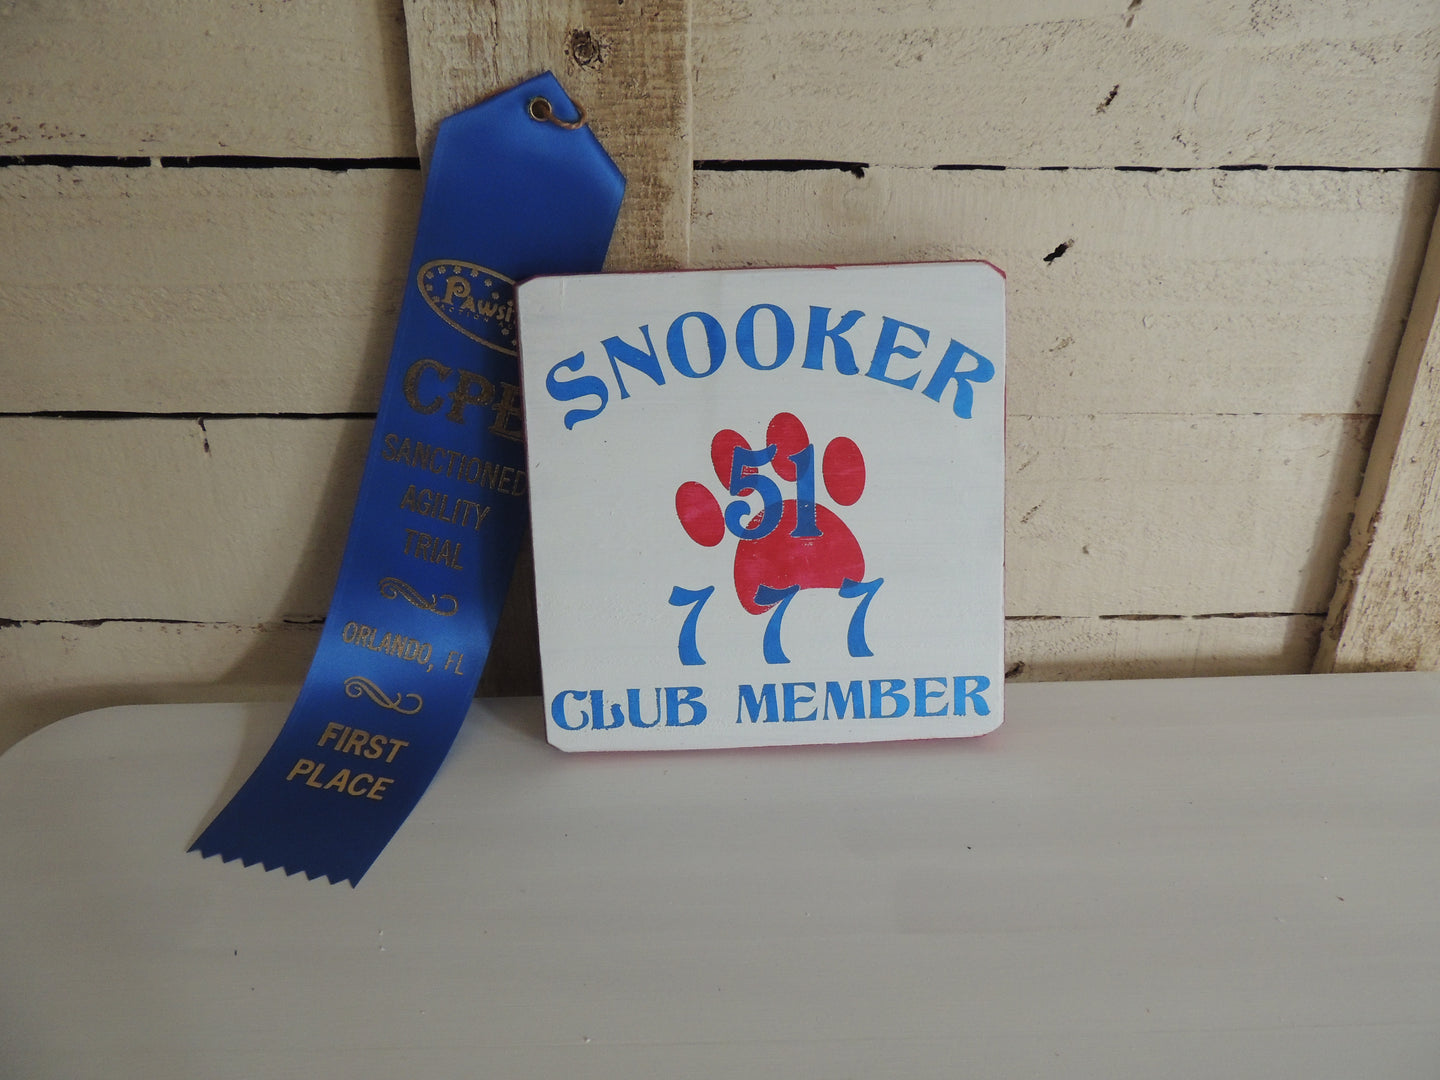 Agility Snooker 51 Club Member